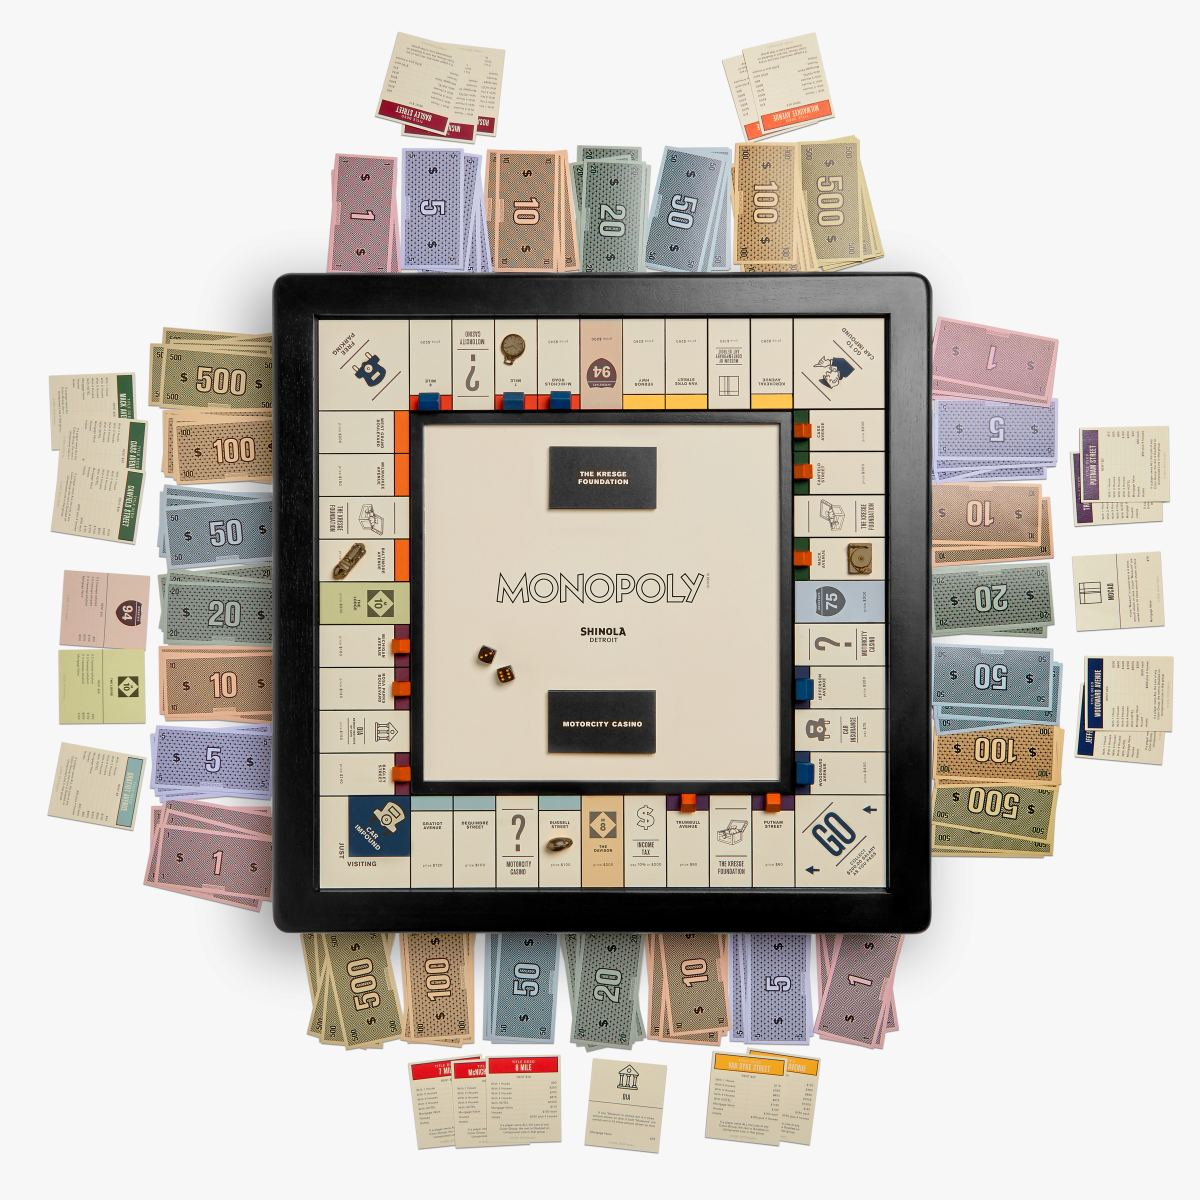 Monopoly: Shinola Detroit Edition